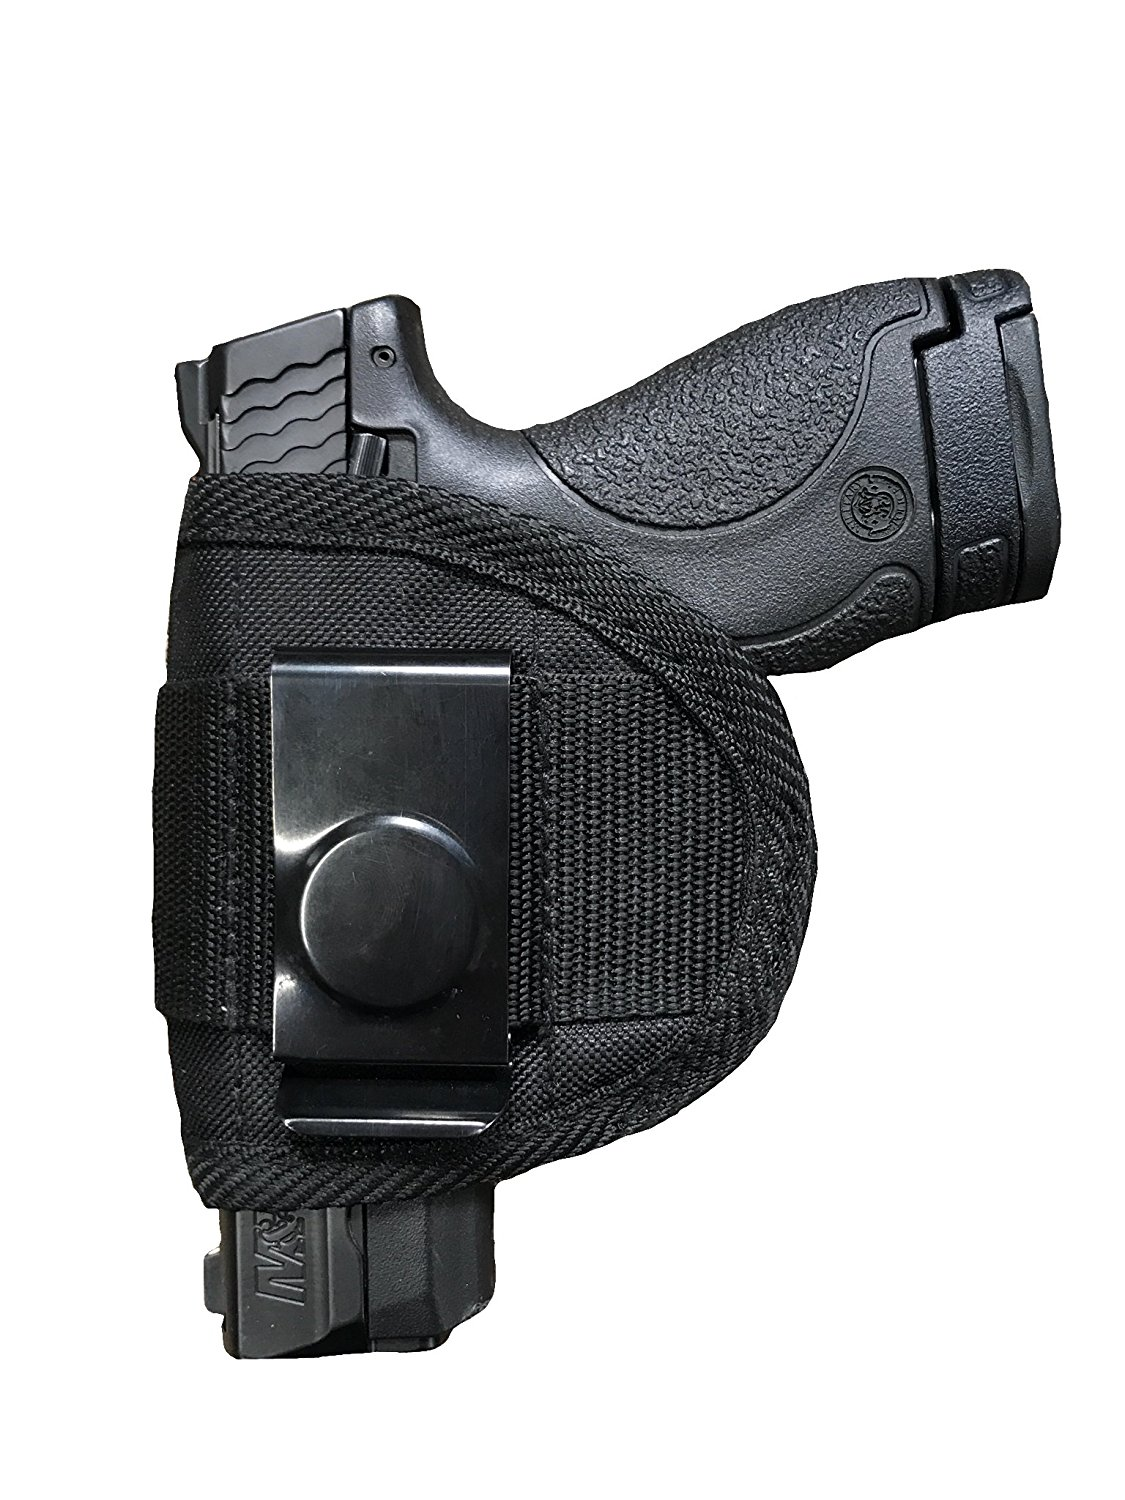 Cheap Holster Xd, find Holster Xd deals on line at Alibaba com